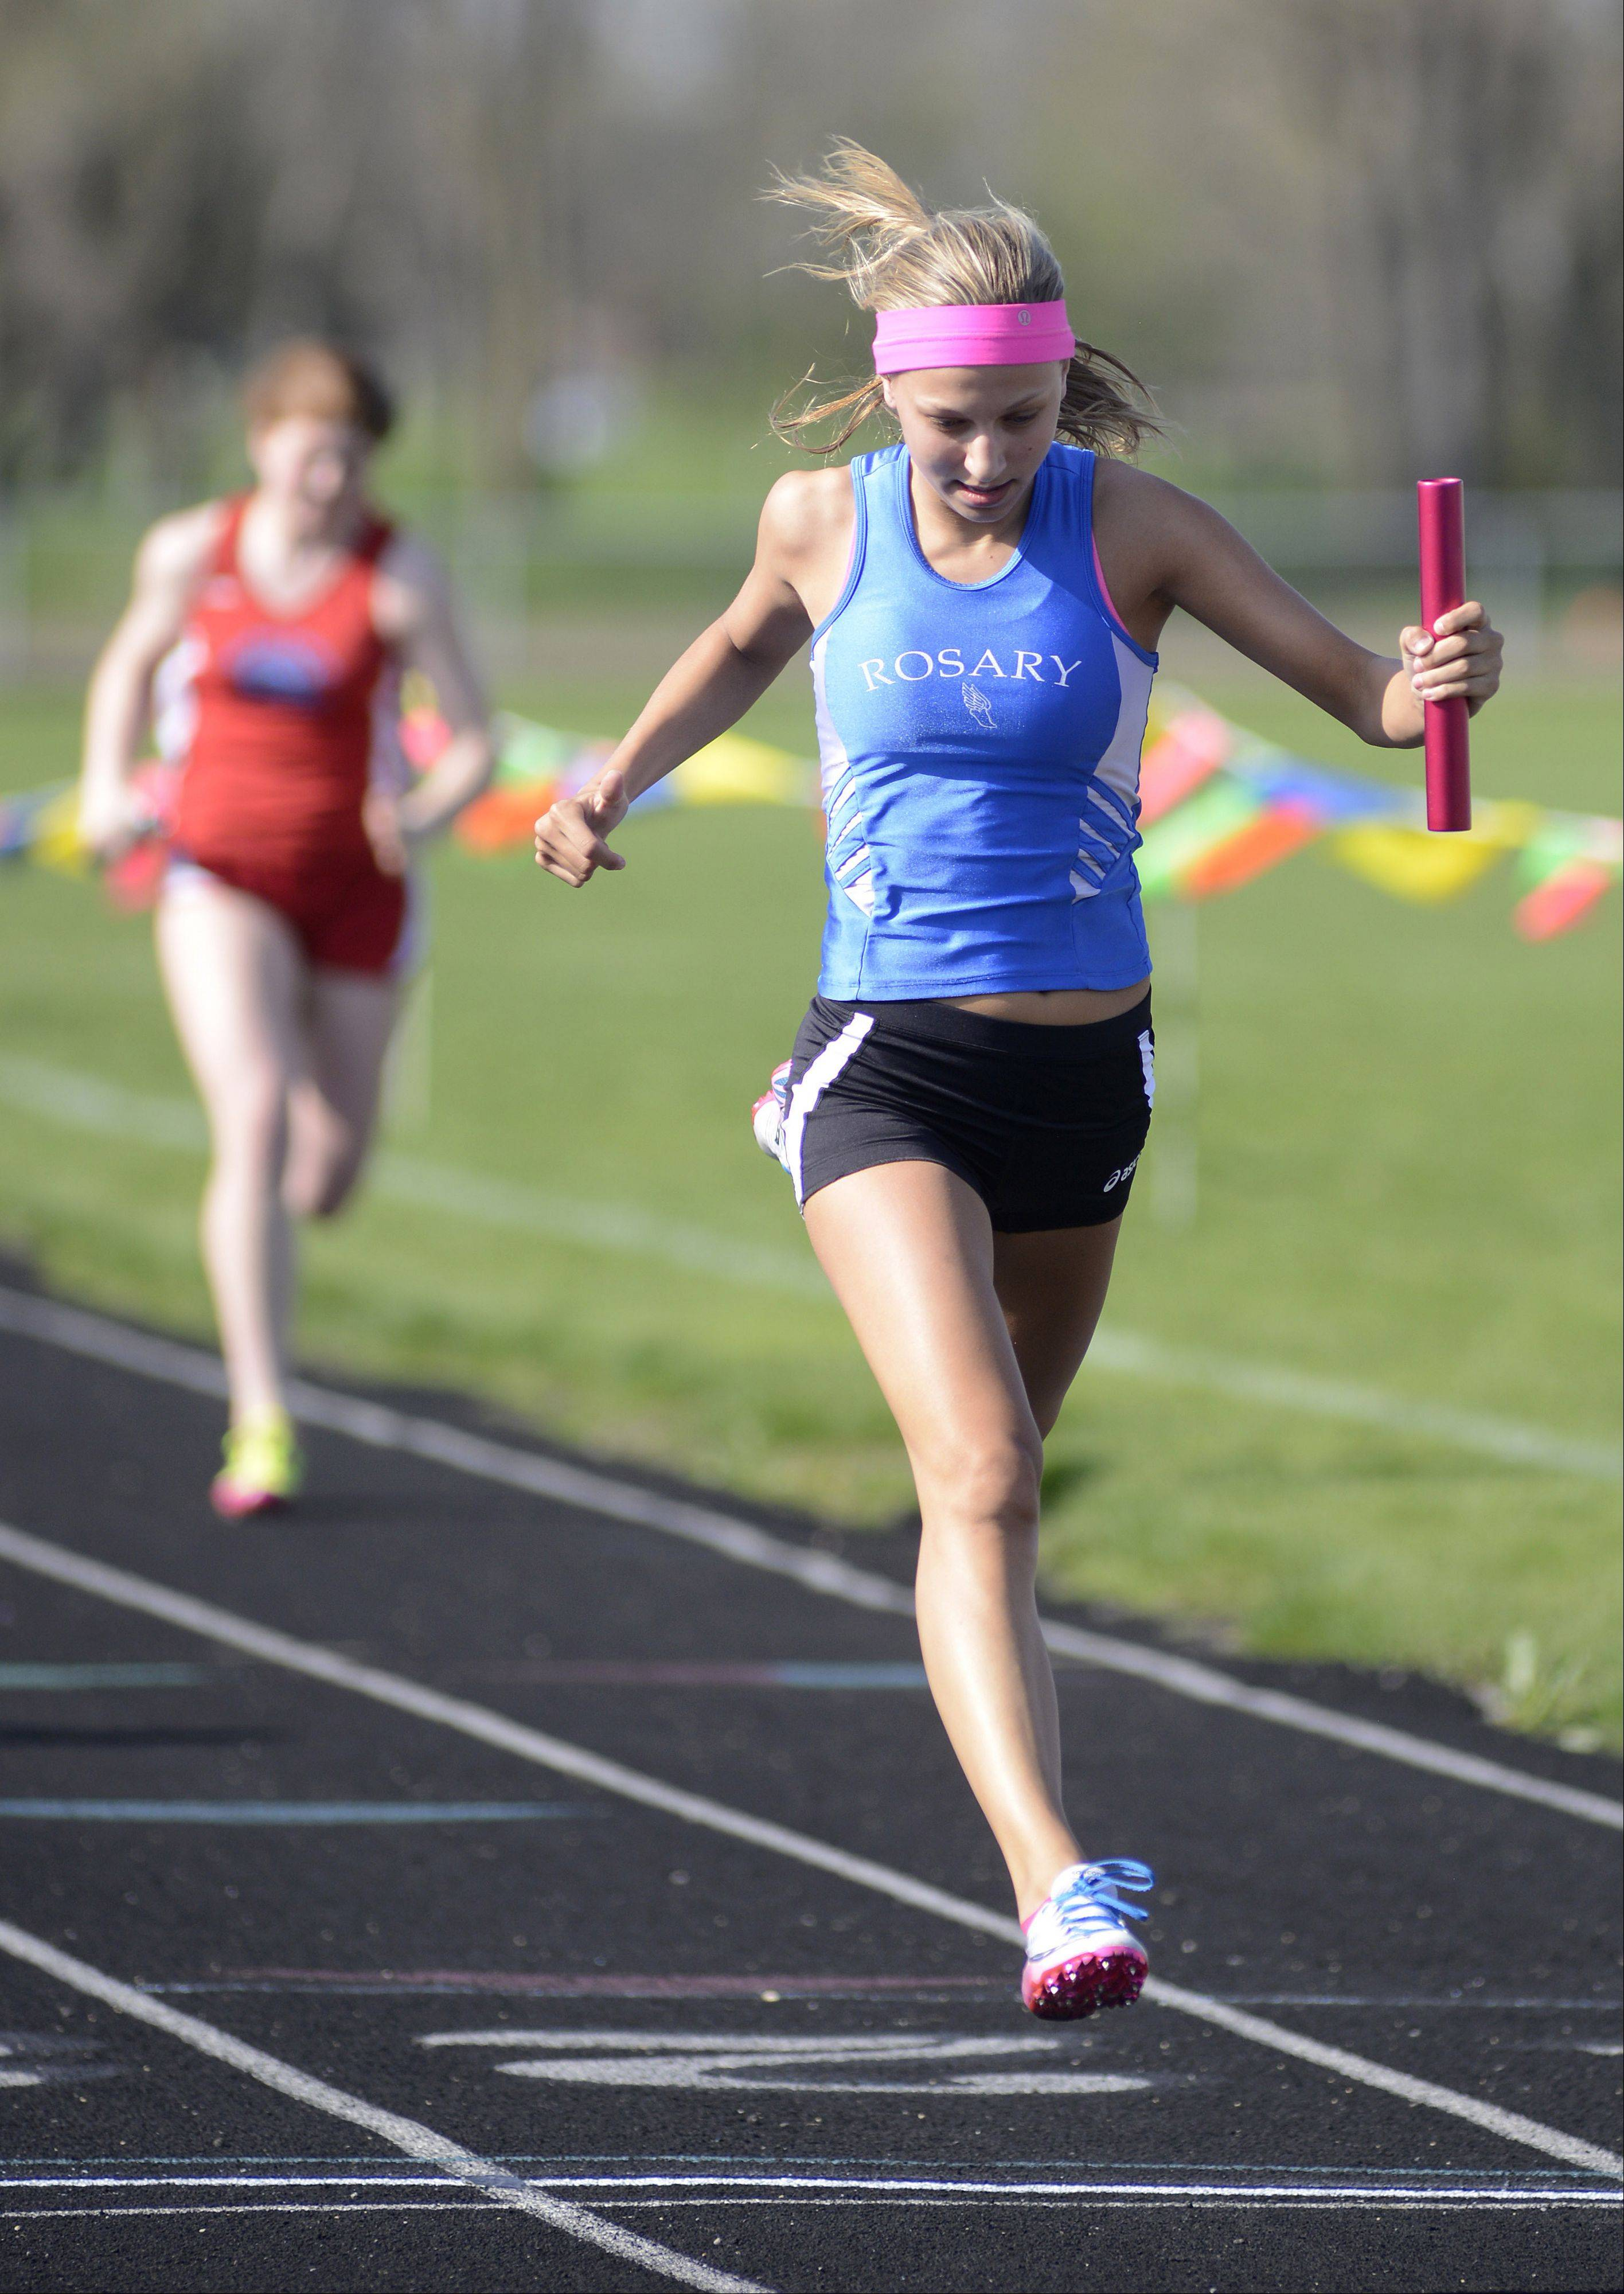 Molly Stefanski helps the Royals take second pace in the second heat of the 4 x 100 relay at the Suburban Christian Conference on Wednesday, May 1.